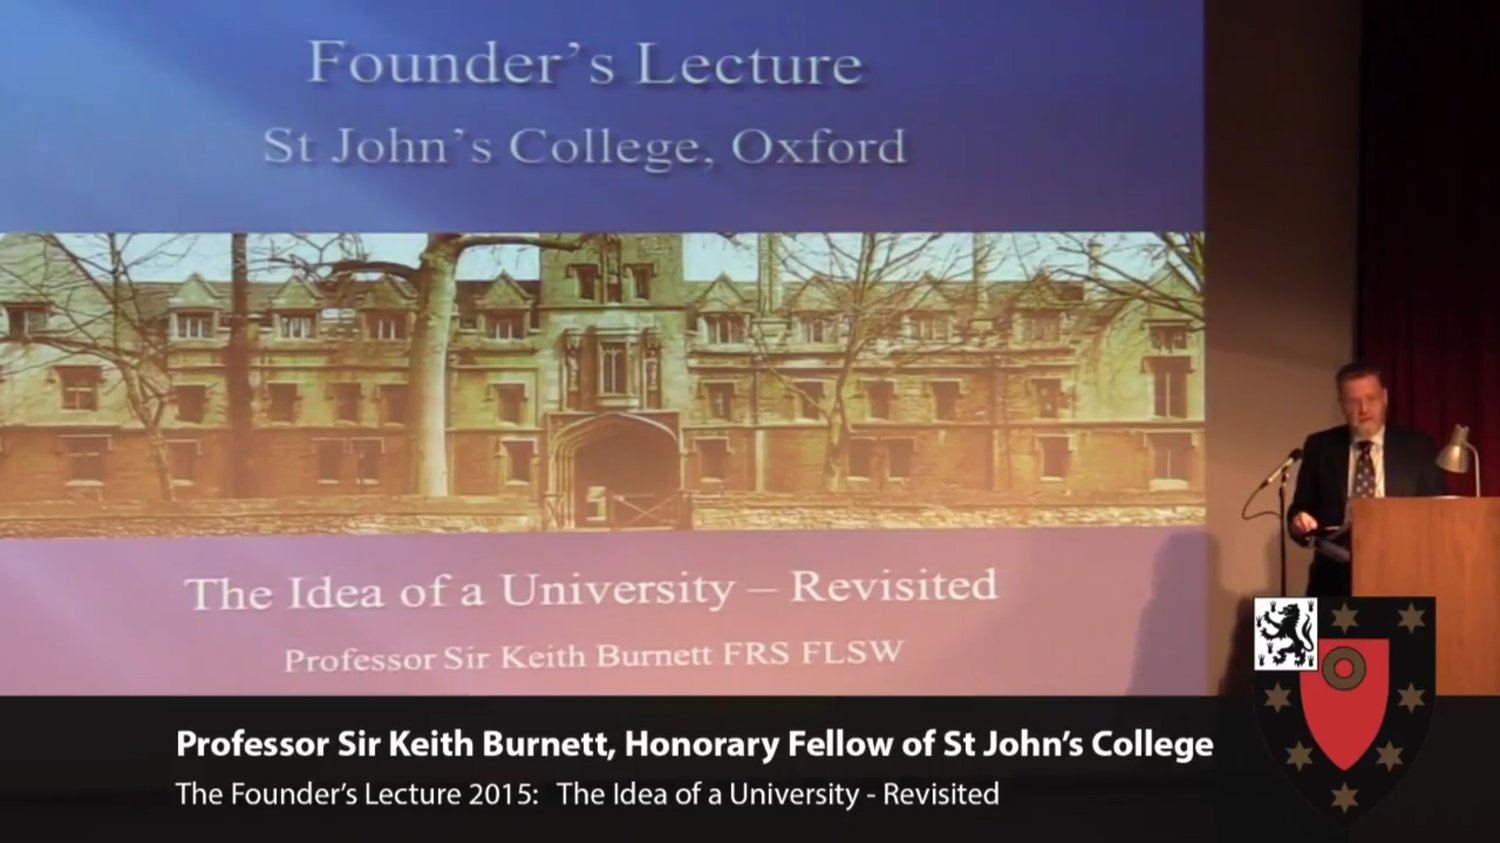 Sir Keith Burnett - Founder's Lecture 2015